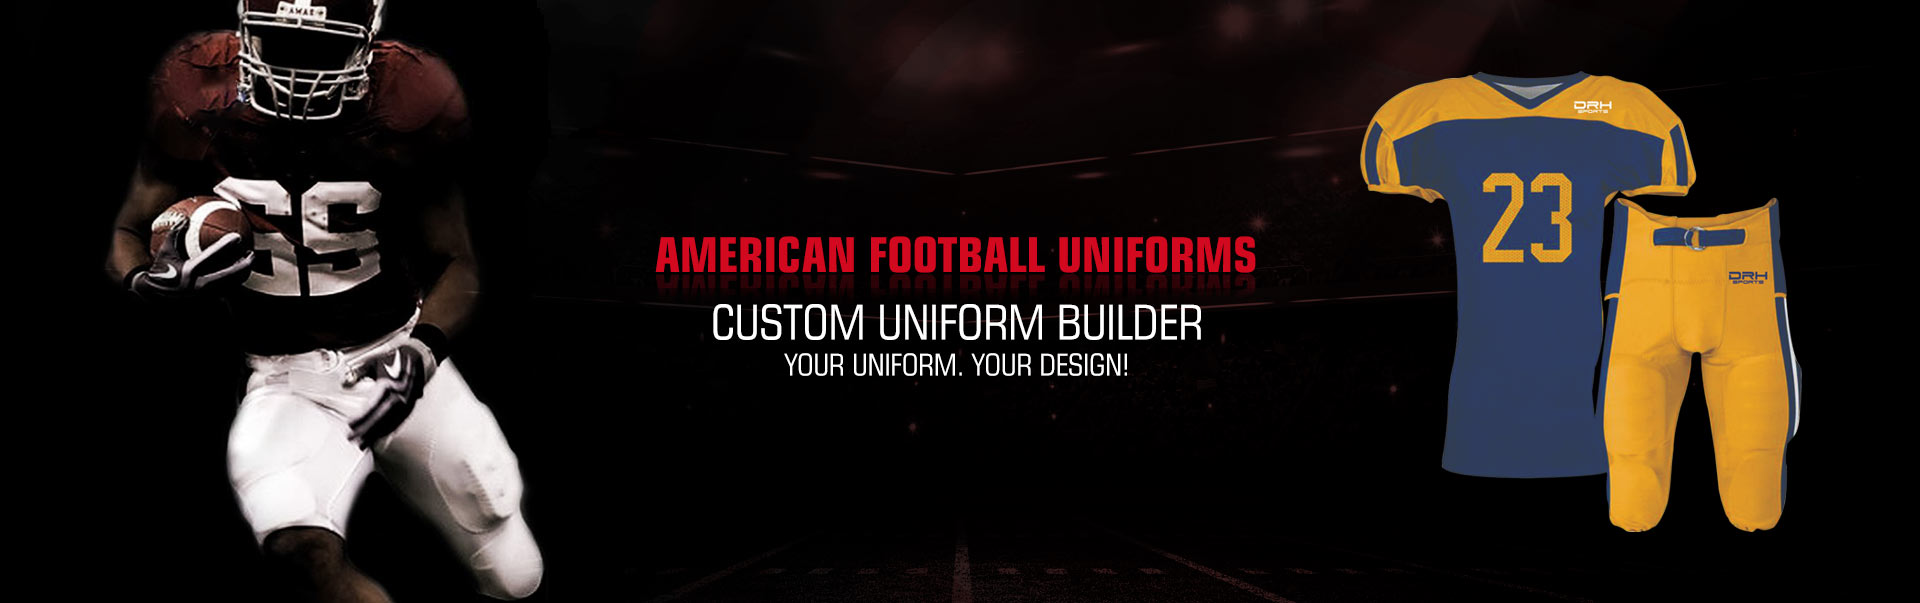 American Football Uniform Wholesaler, Suppliers in Balashikha